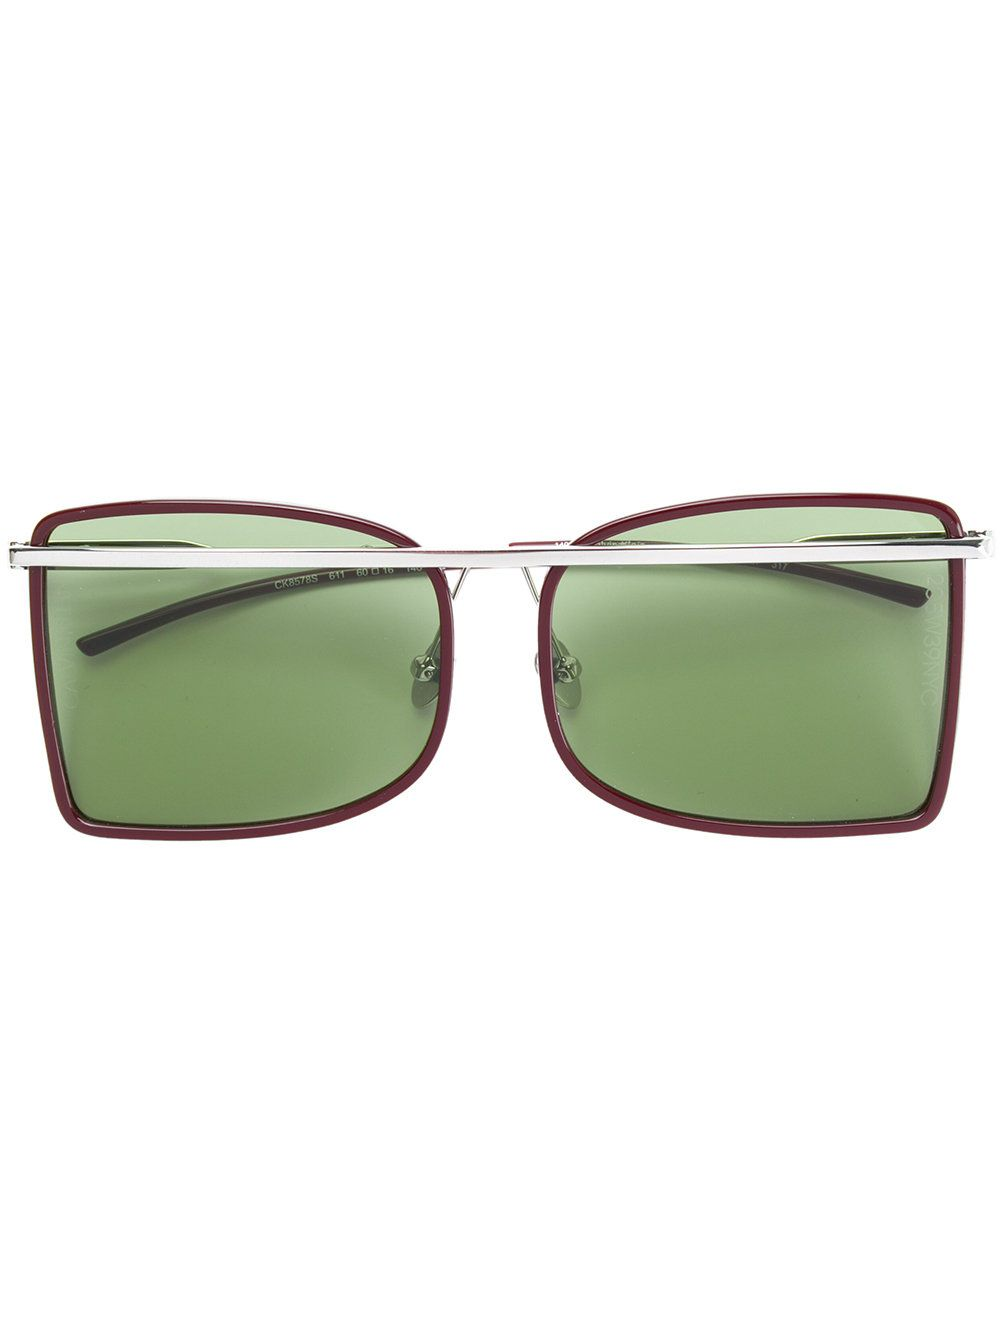 Calvin Klein 205W39nyc metal frame sunglasses Sale Best Wholesale Low Cost For Sale Outlet 2018 wpxi6